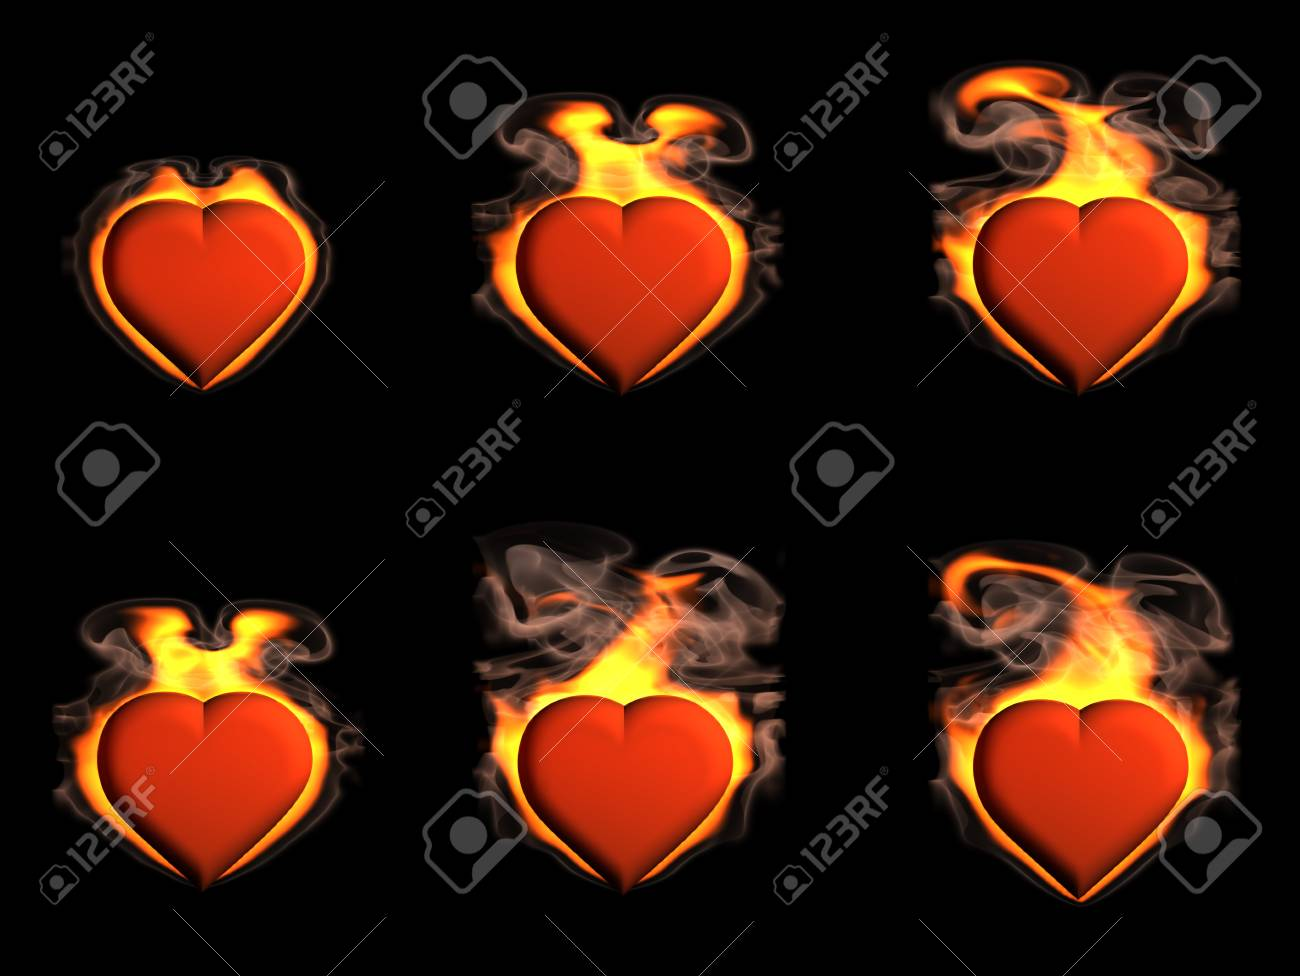 Heart in Fire Stock Photo - 9919410